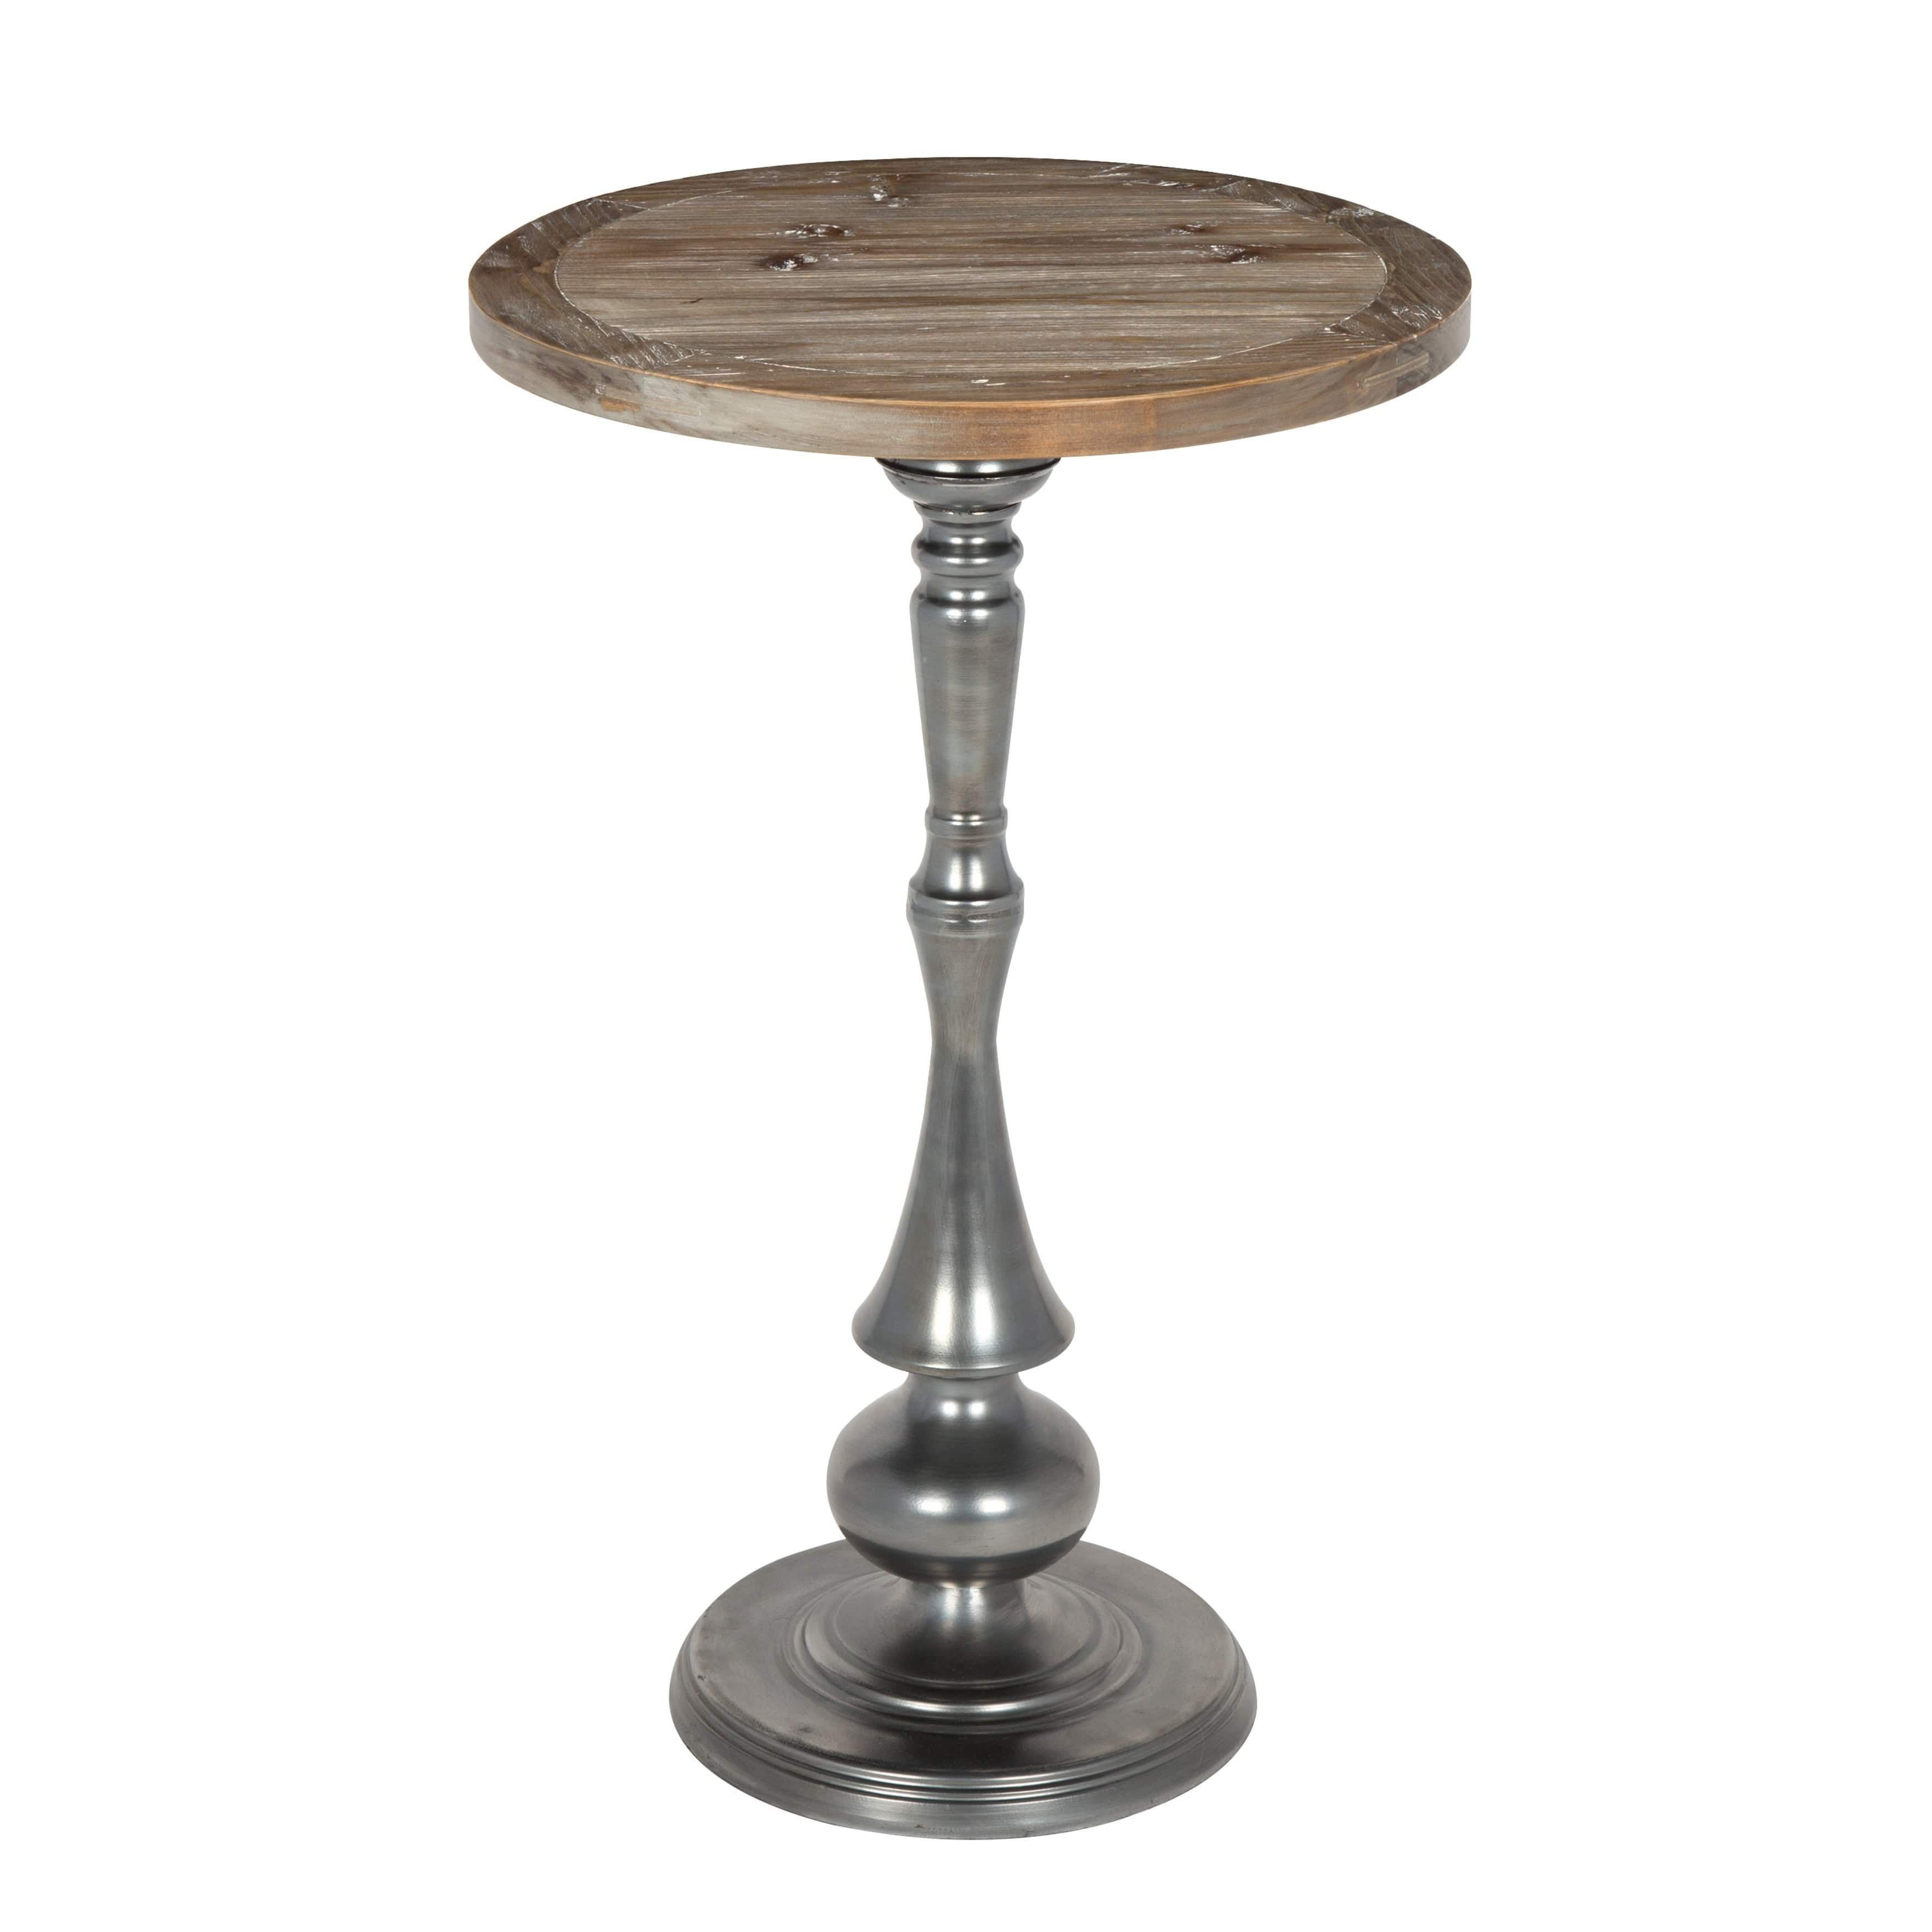 kate and laurel regina round metal wood pedestal accent table silver brown patio furniture with storage square wall clock retro wooden chairs dark chest coffee night grill side